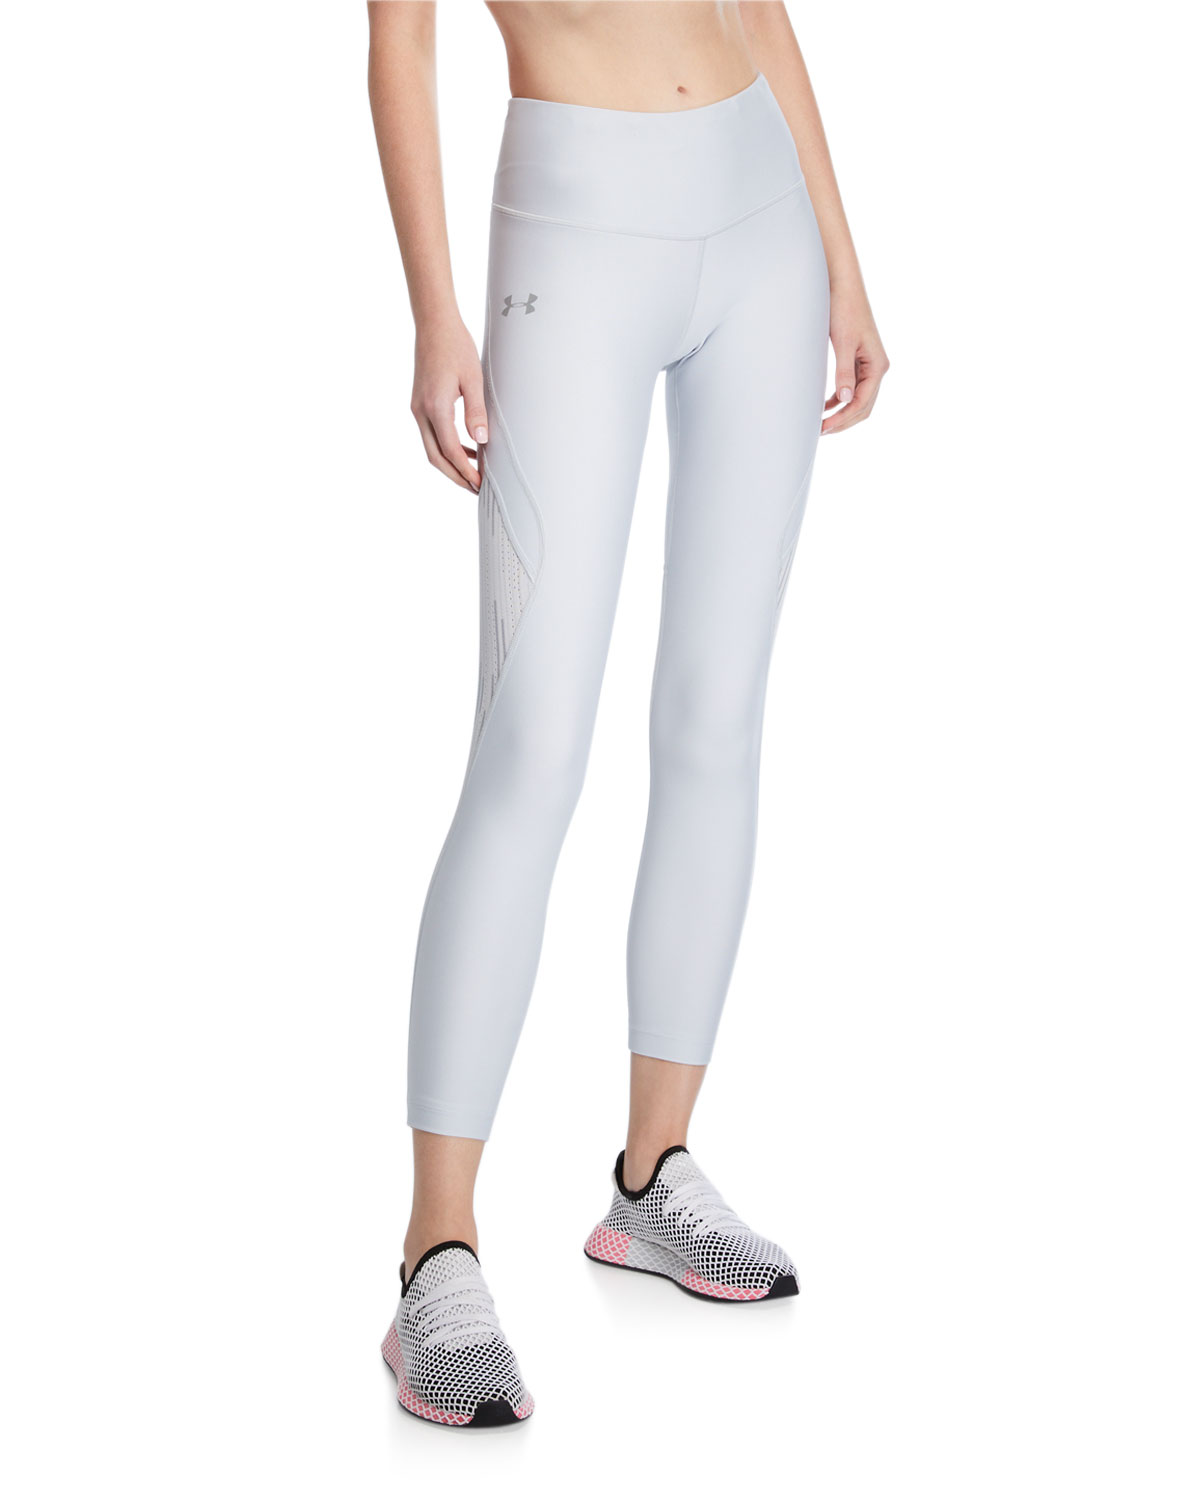 Under Armour Pants ARMOUR FLY FAST GLARE CROP LEGGINGS